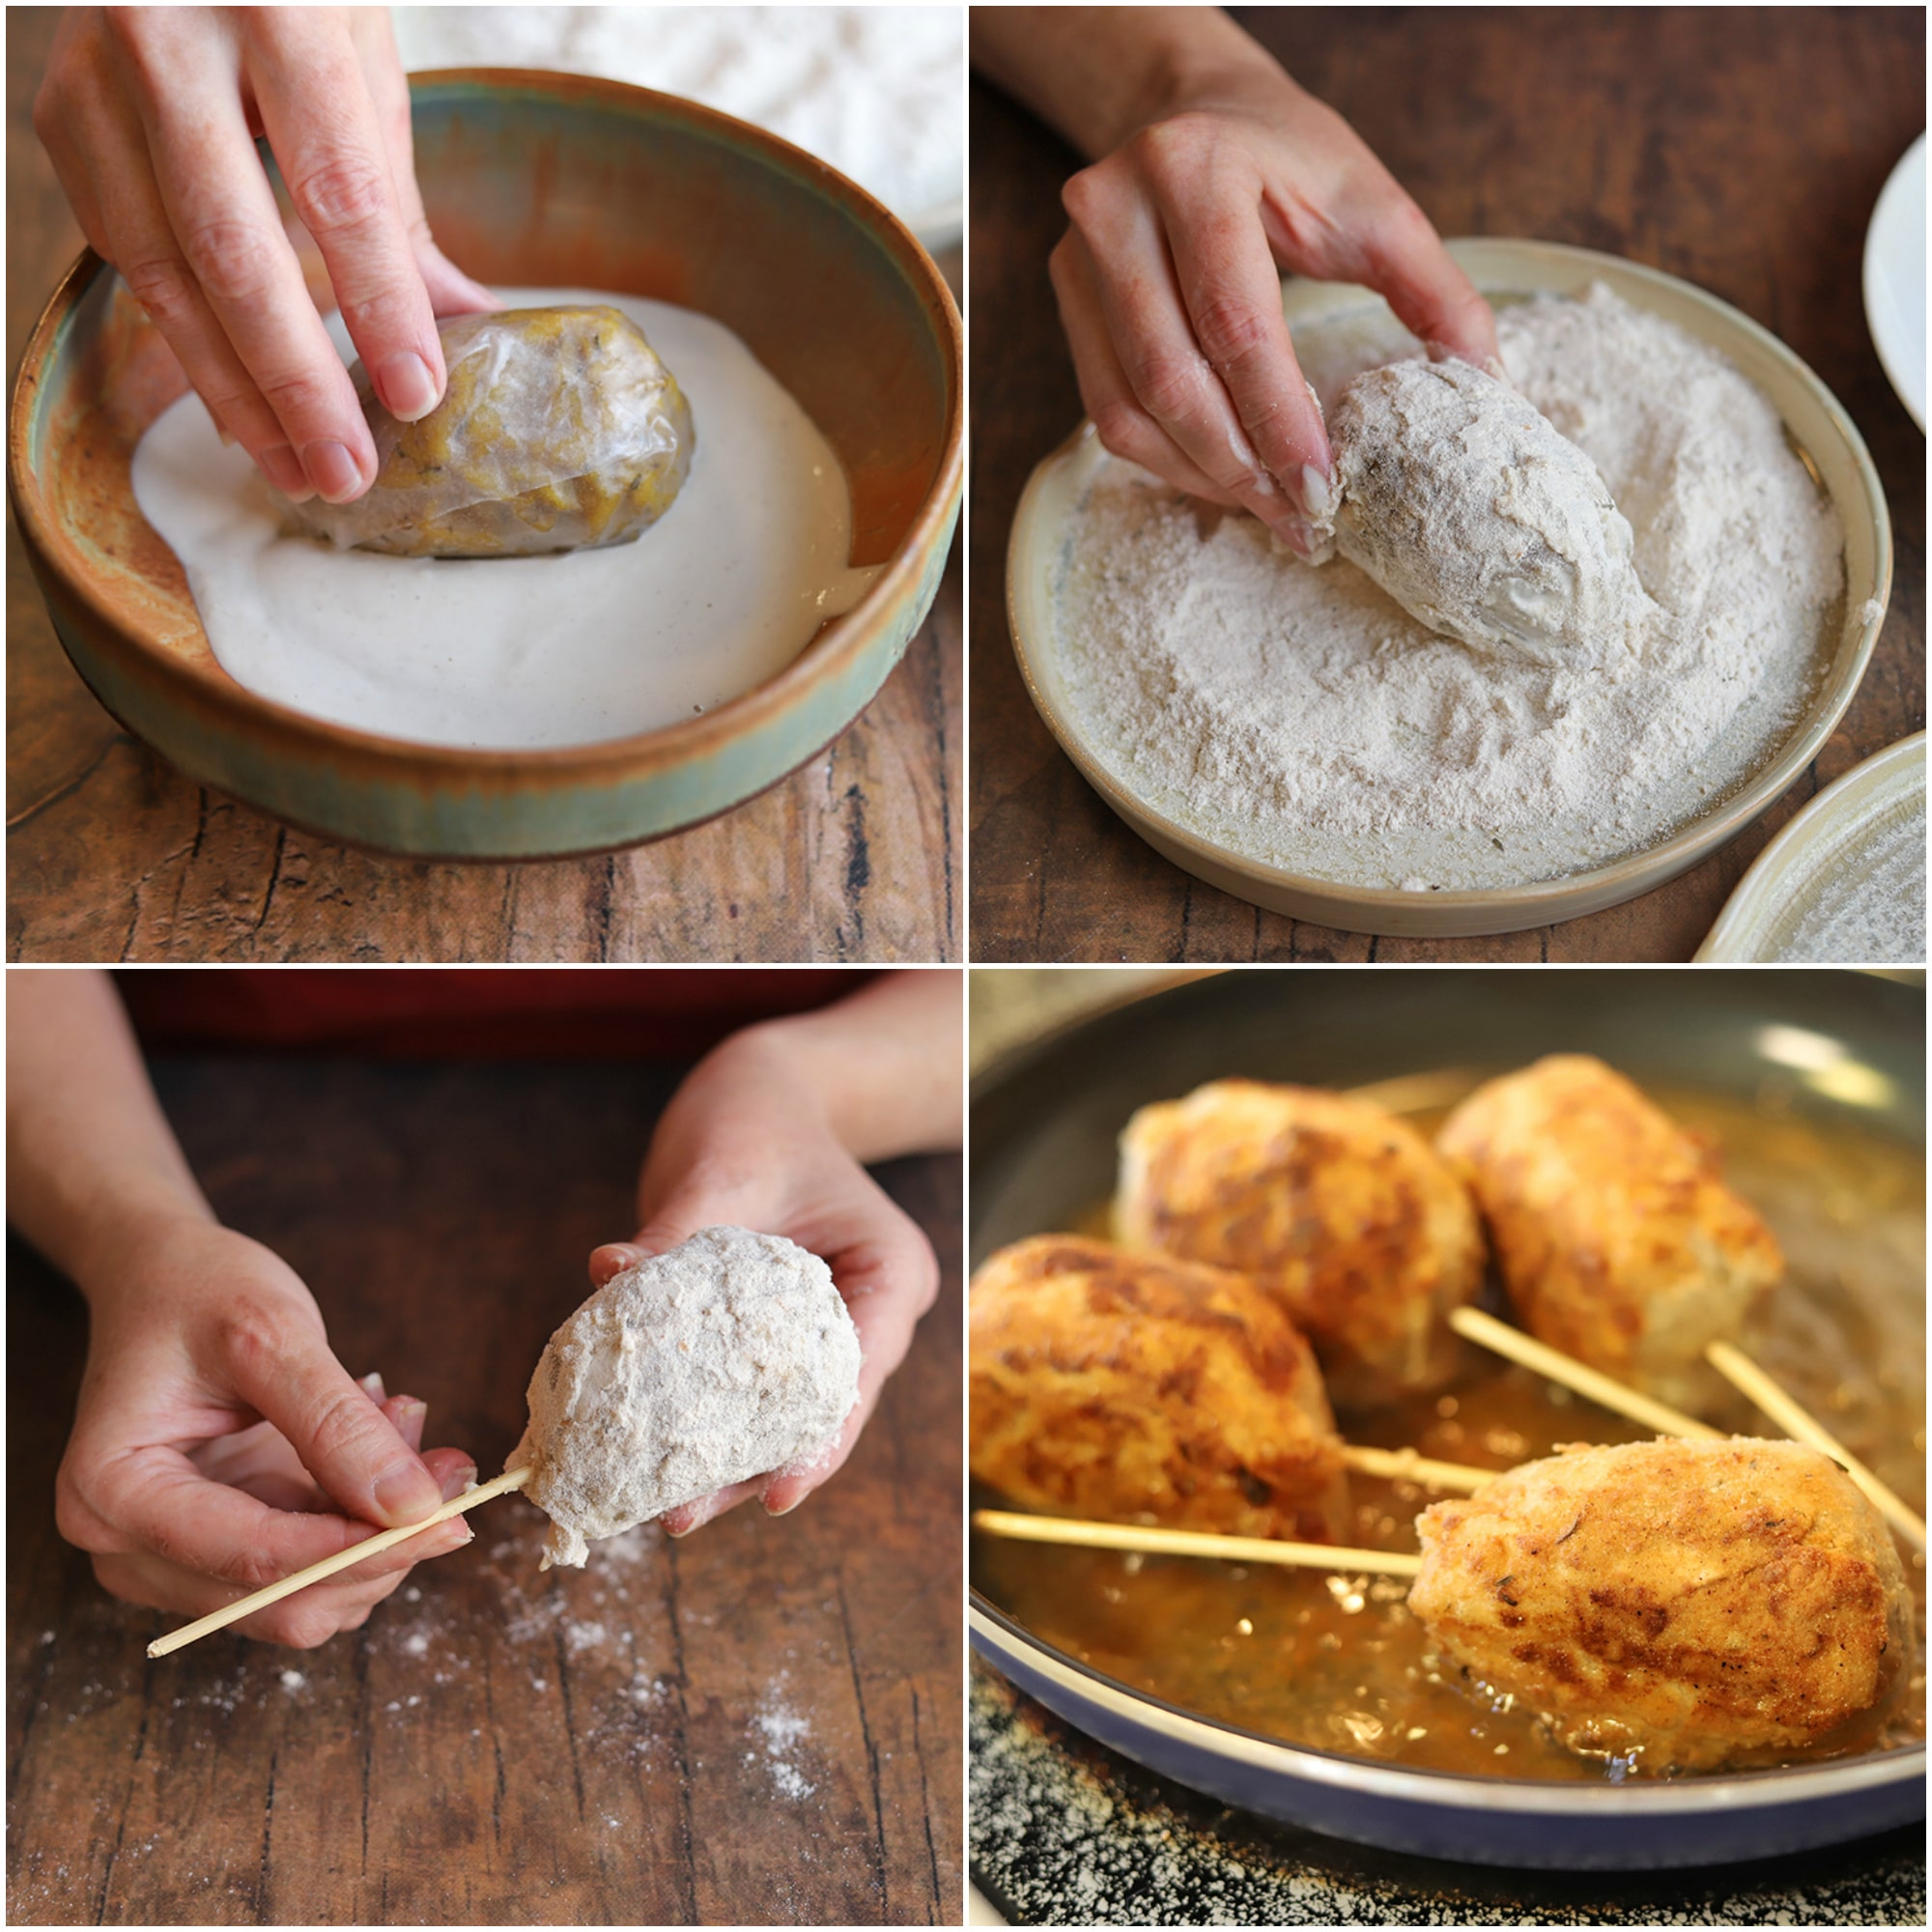 Collage showing how to bread vegan chicken - dipping in cashew cream, breading in flour, piercing with bamboo skewer, and drumsticks frying in oil.